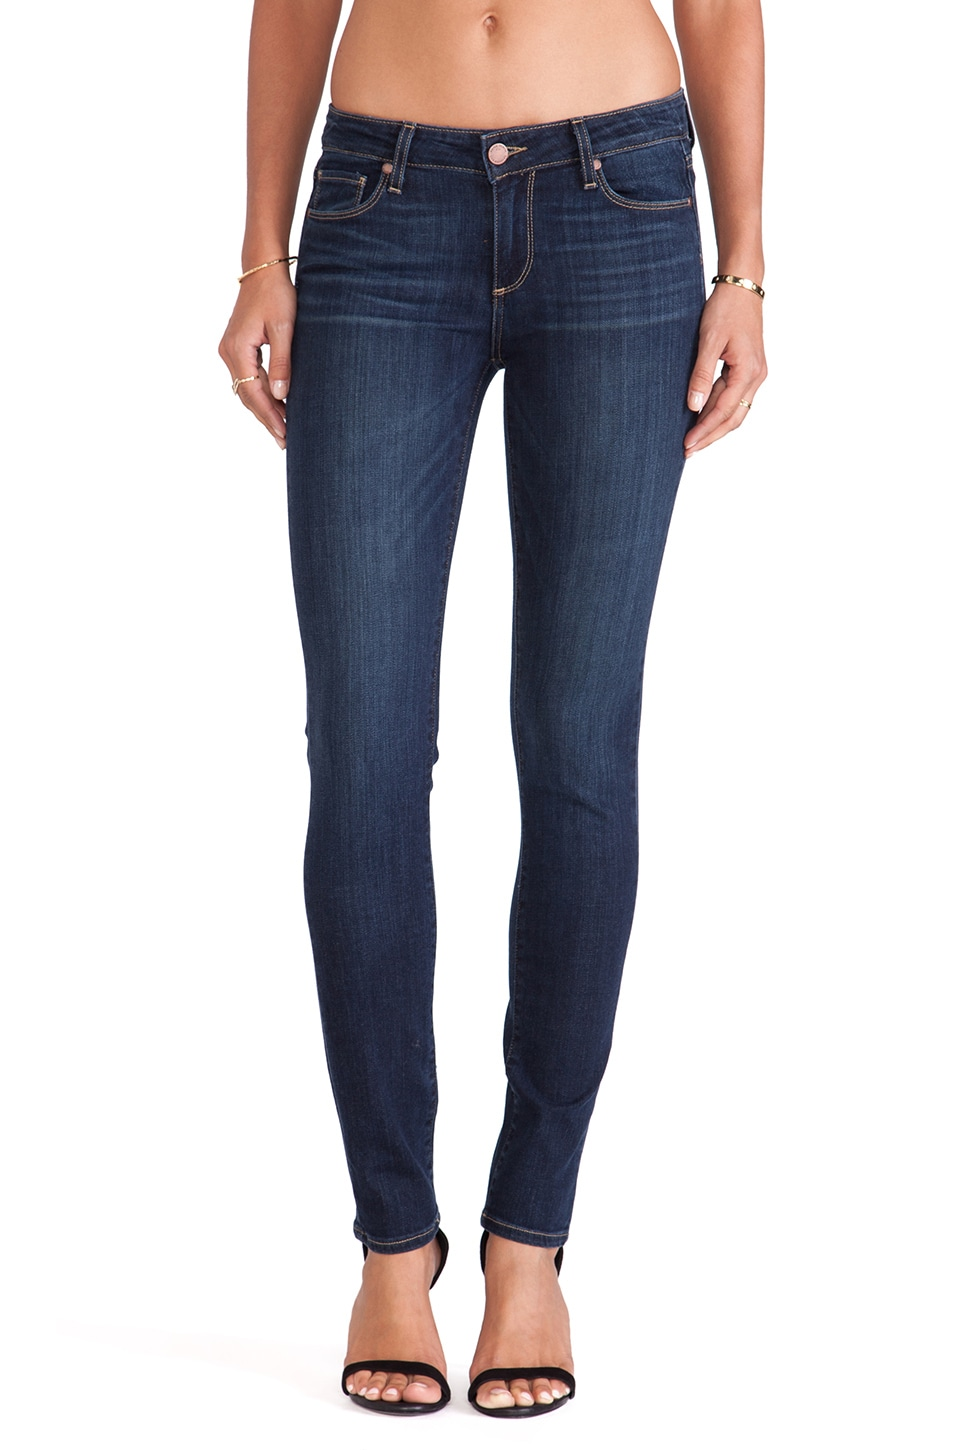 PAIGE Denim Skyline Skinny in Verona